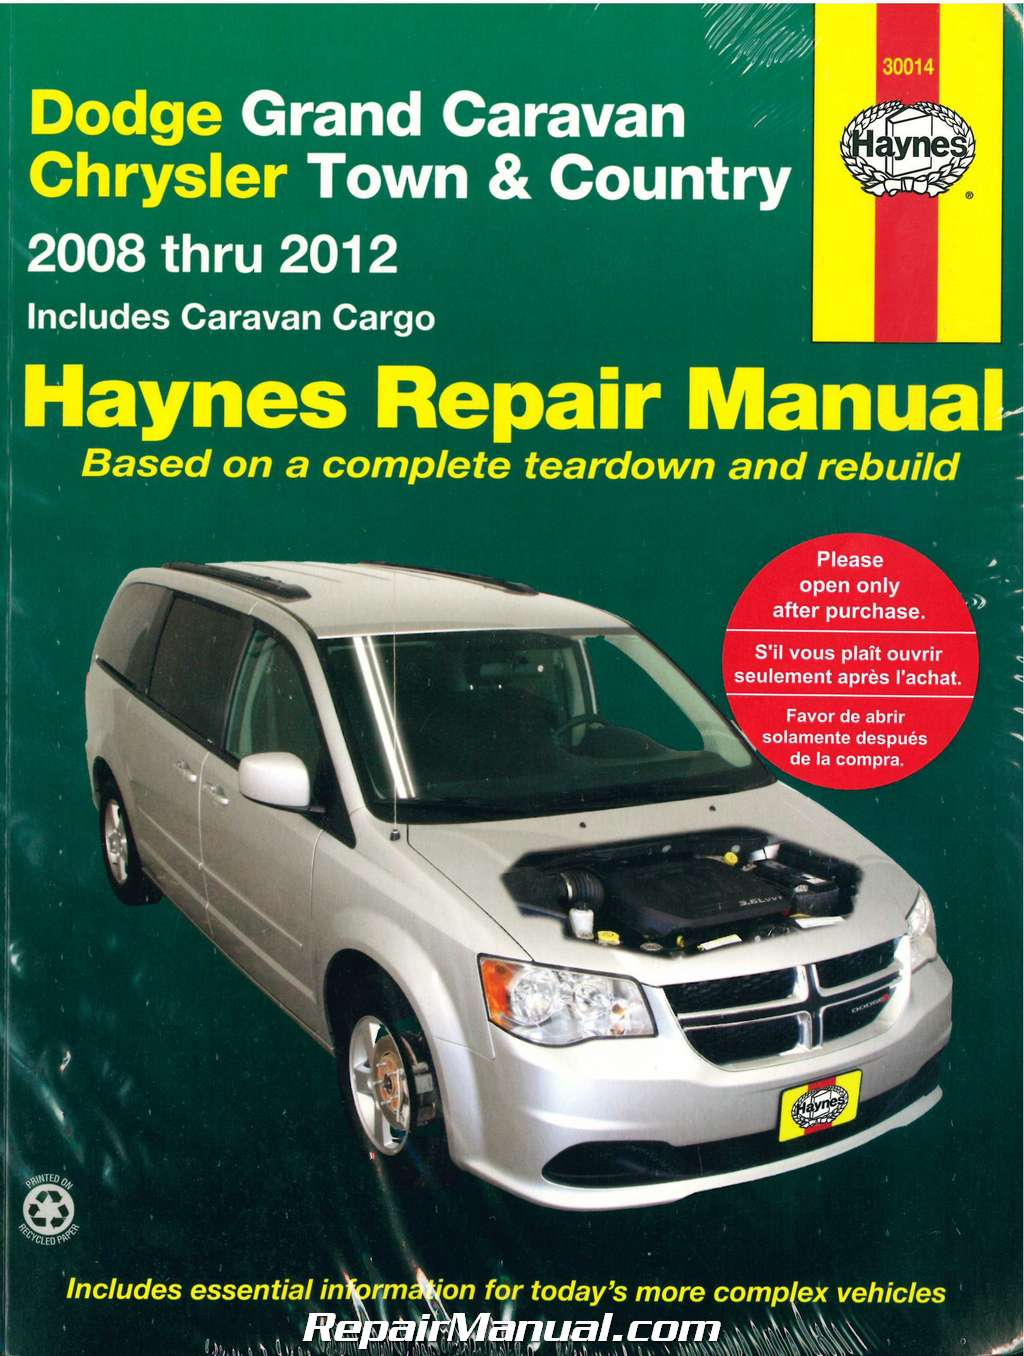 dodge grand caravan chrysler town country van 2008 2012 haynes car rh repairmanual com 2014 town & country manual town country 2008 manual